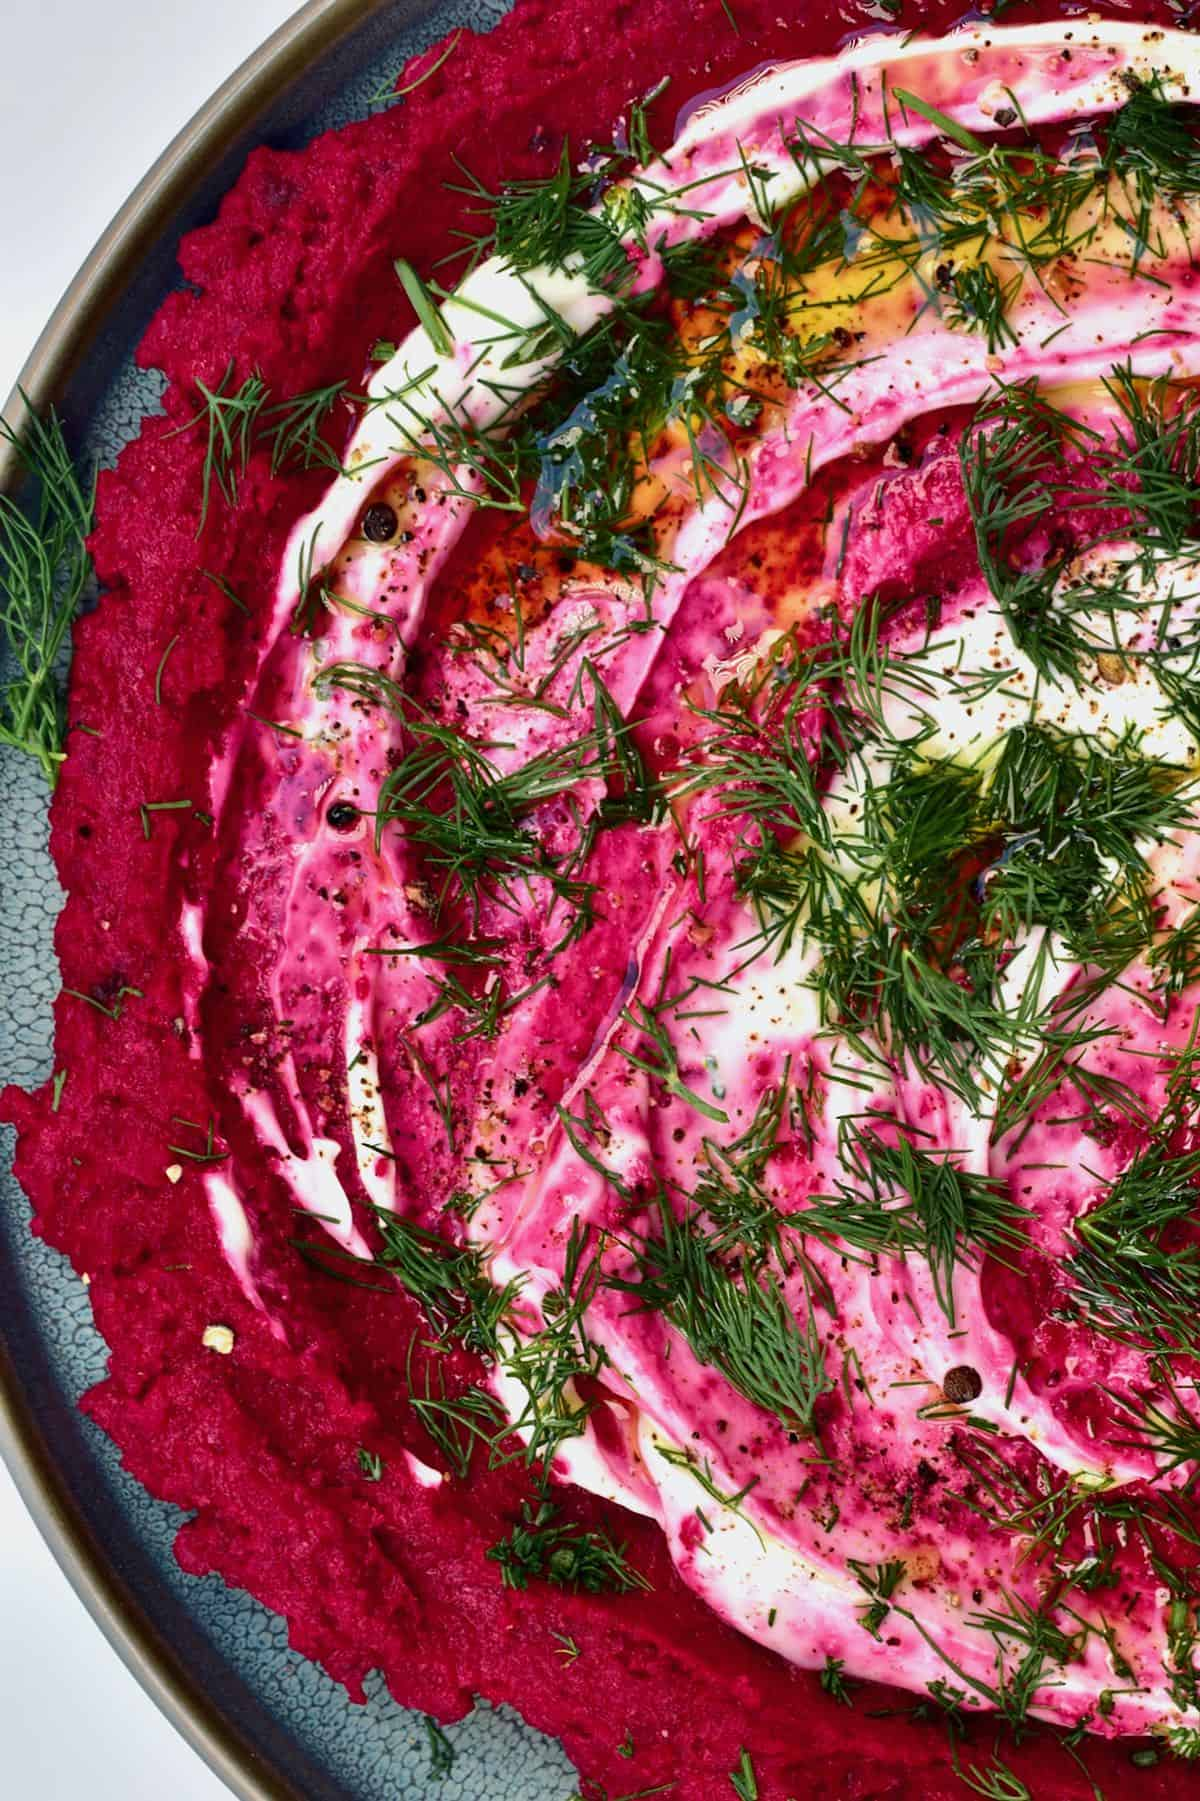 Beetroot hummus topped with whipped cheese and dill